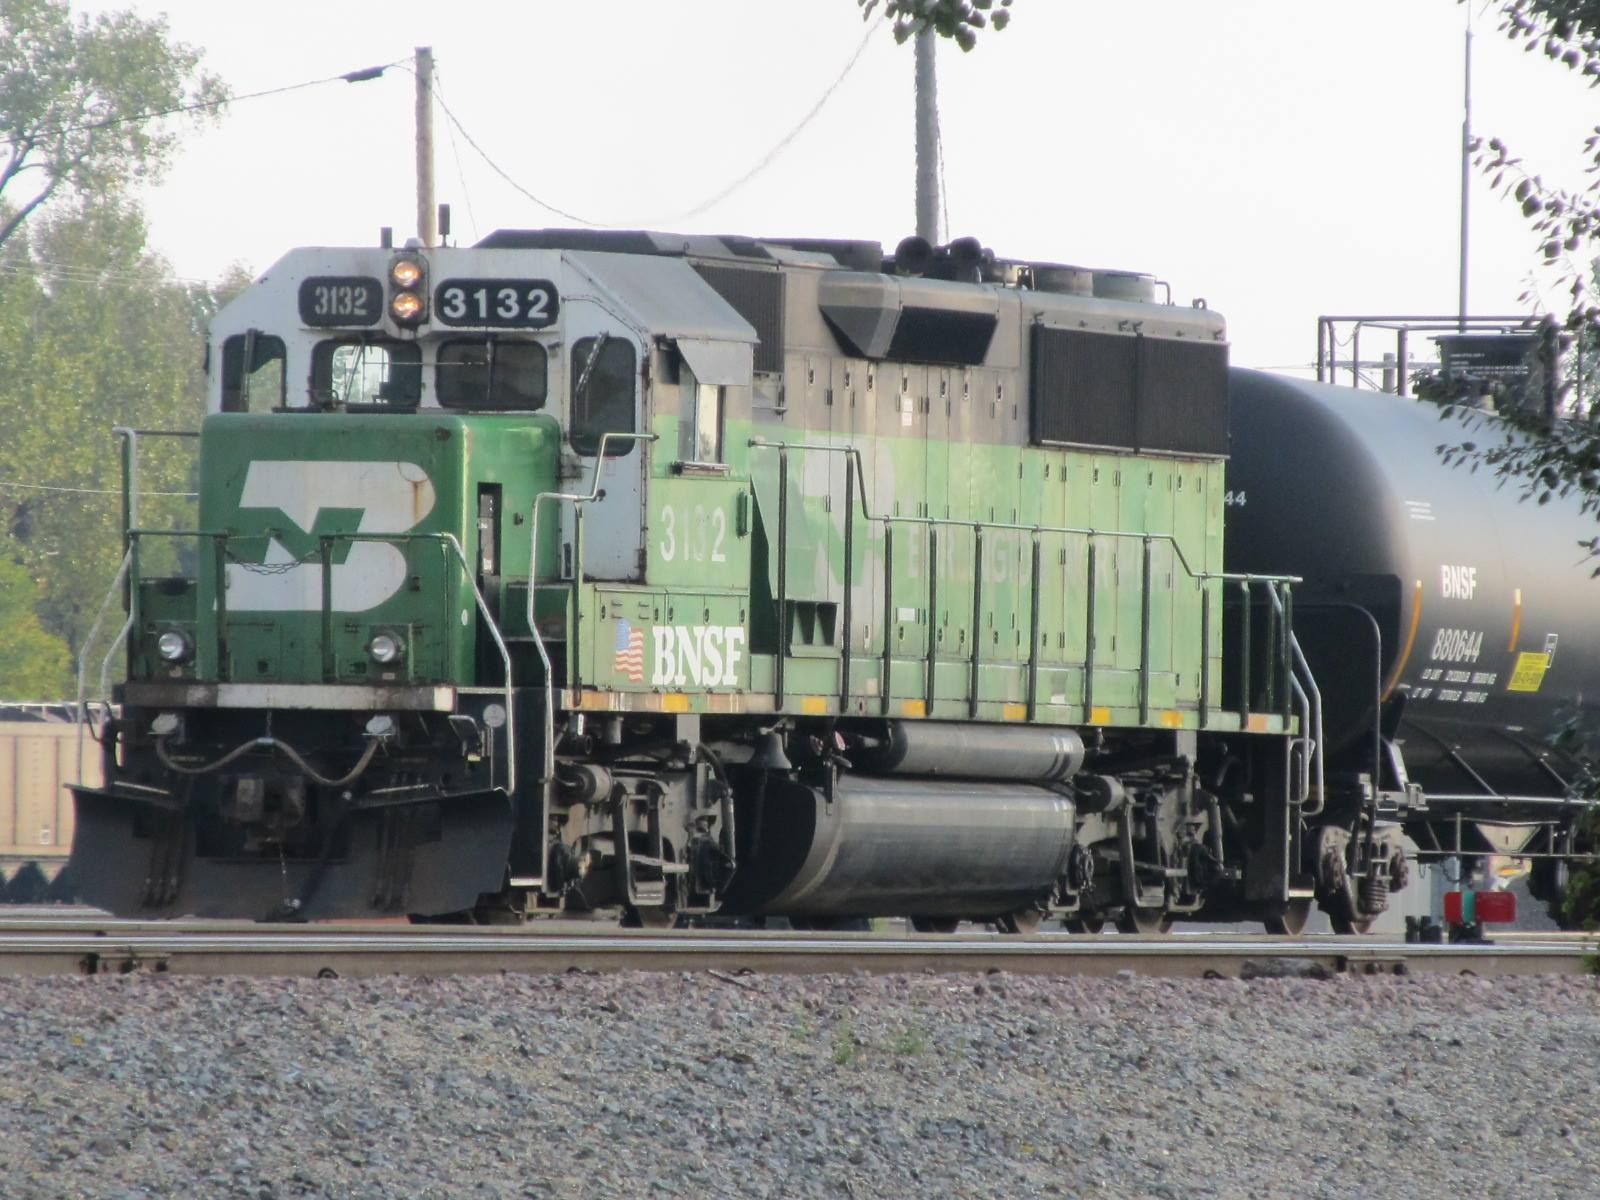 Bnsf 3132 exbn on a switch job in the galesburg yard